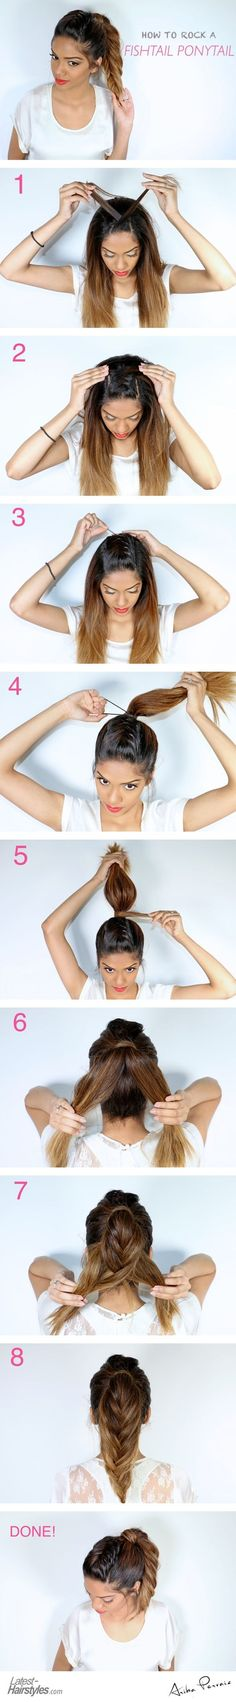 How to Create a Snake Braid in Under 5 Minutes  The zigzagging snake braid is one of those gorgeously intricate hairstyles that looks like it took a full beauty team to accomplish when it's really just a five-step kind of 'do. Some snake braids